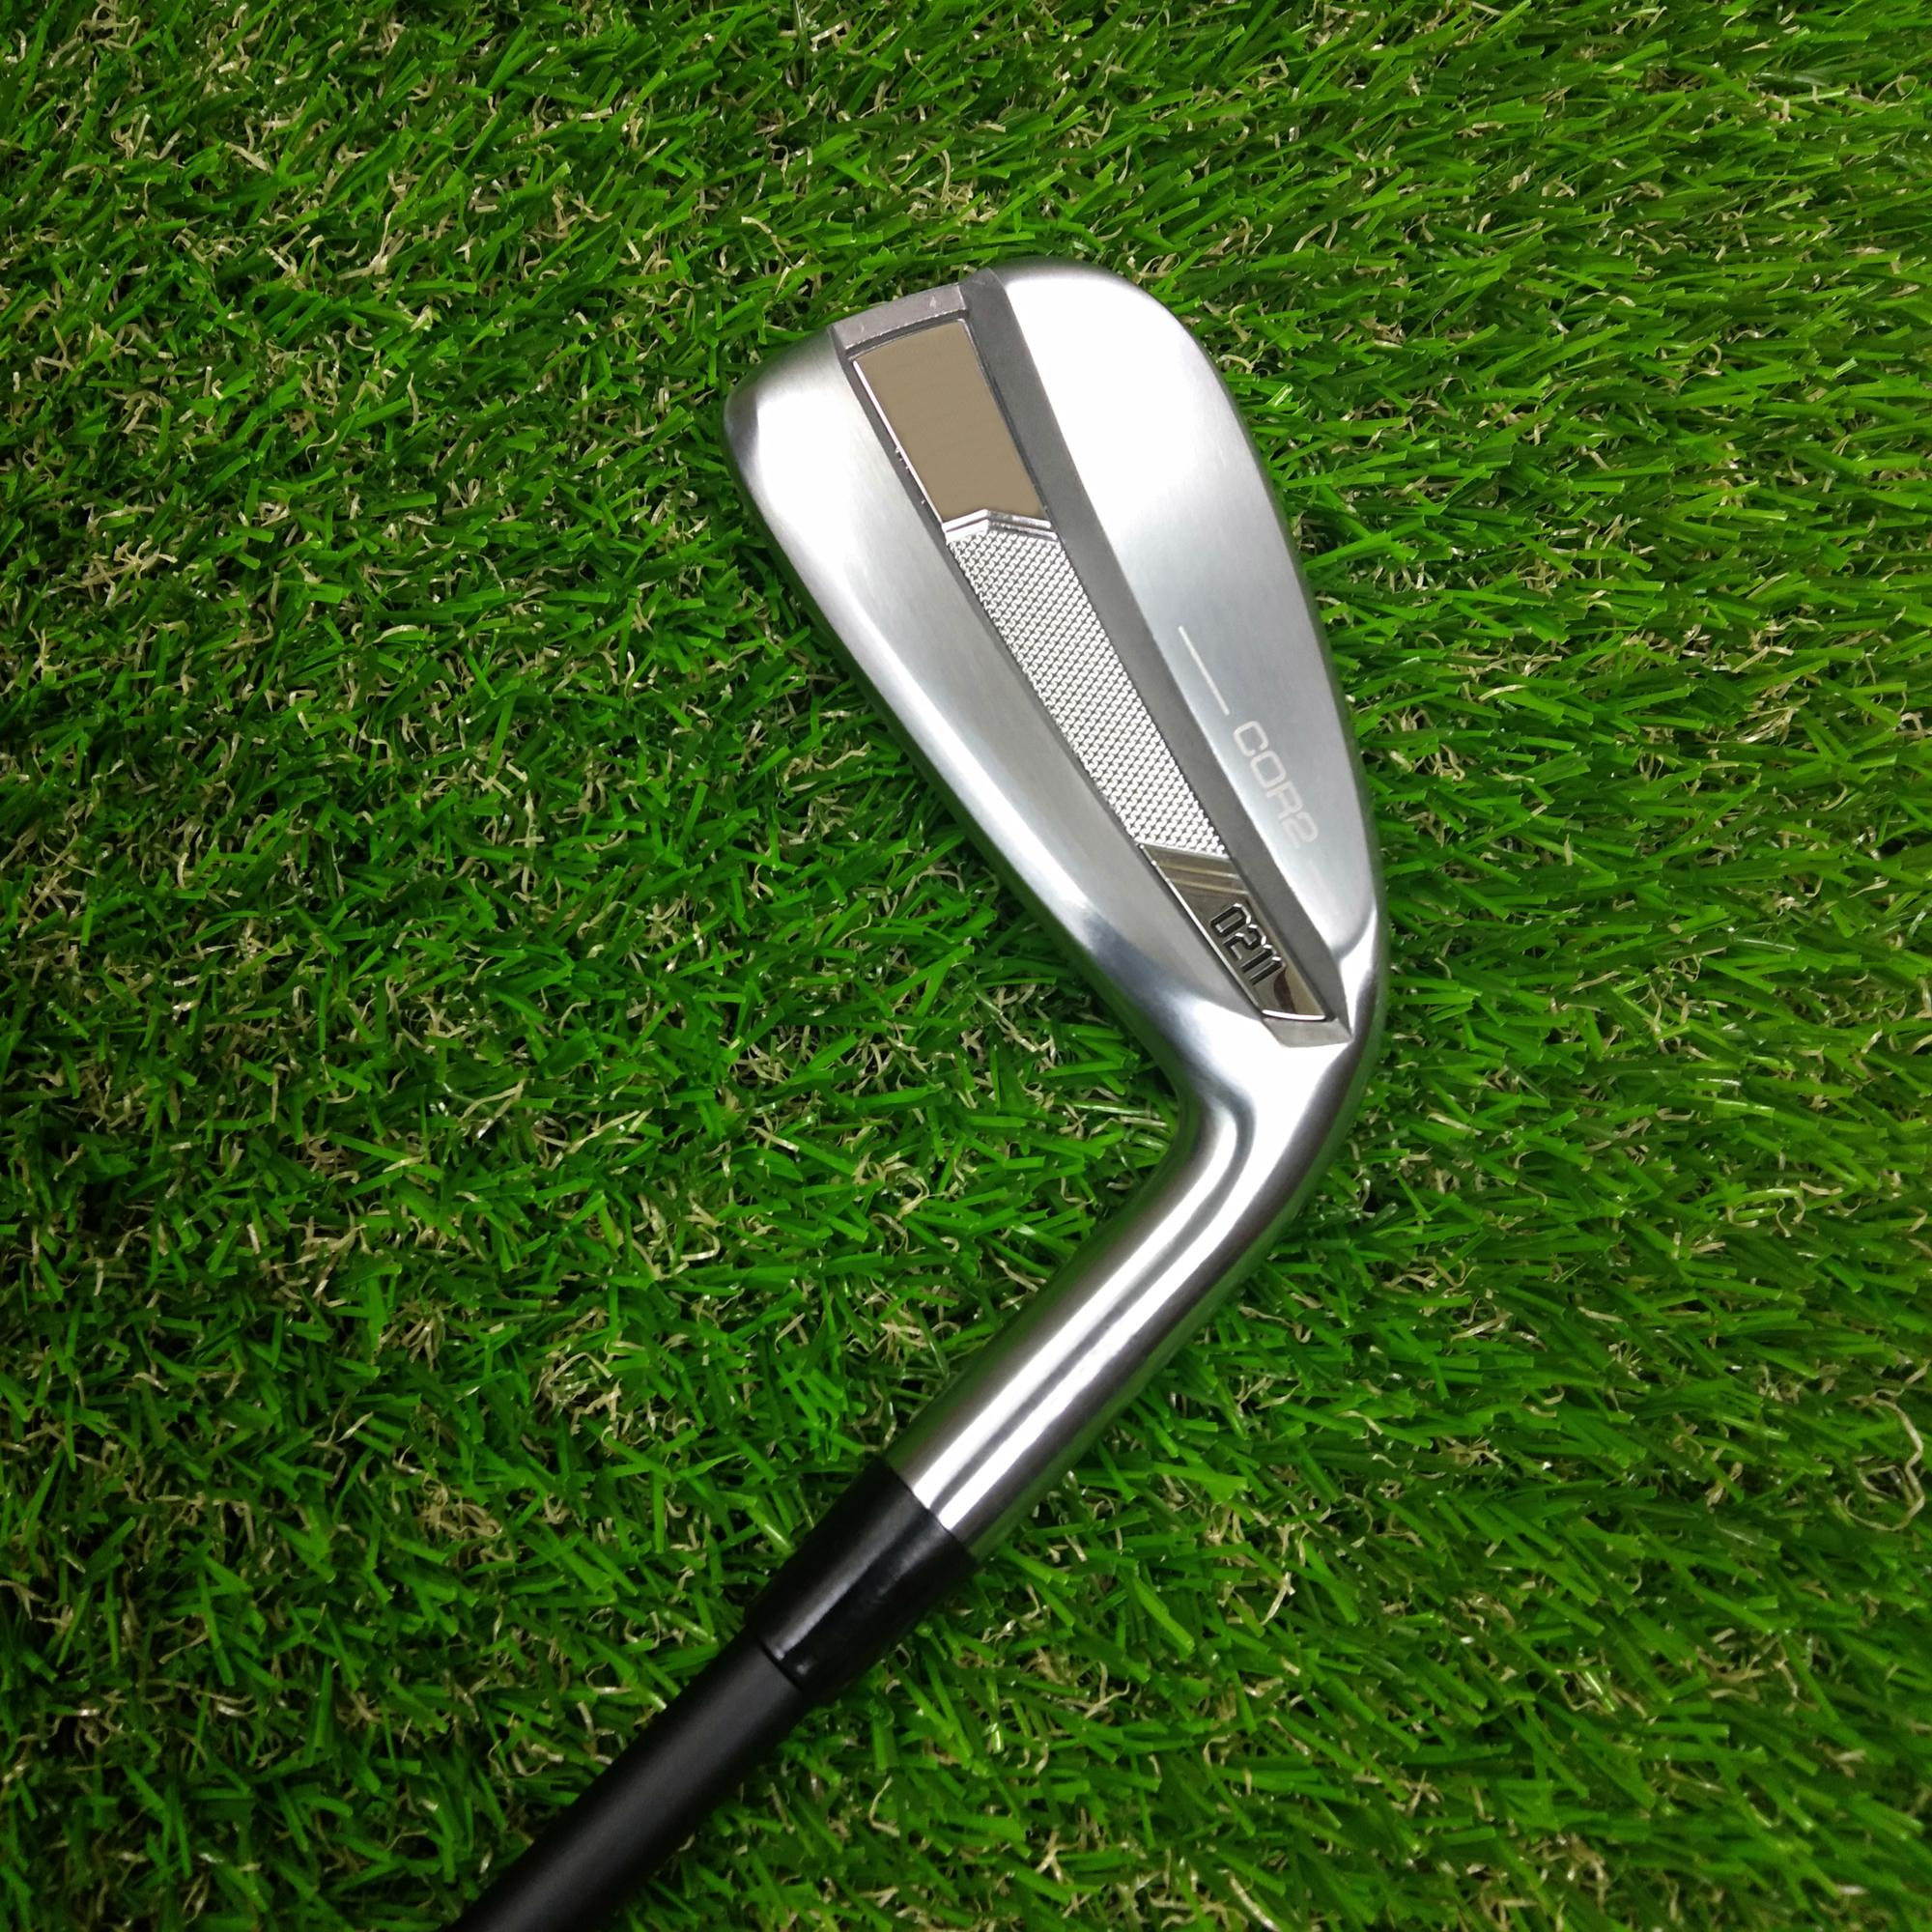 Golf Clubs 0211 COR2 Irons Sliver Golf Forged Iron 4-9WGS A Set Of 9 Pieces R / S Send Headcover Free Shiping